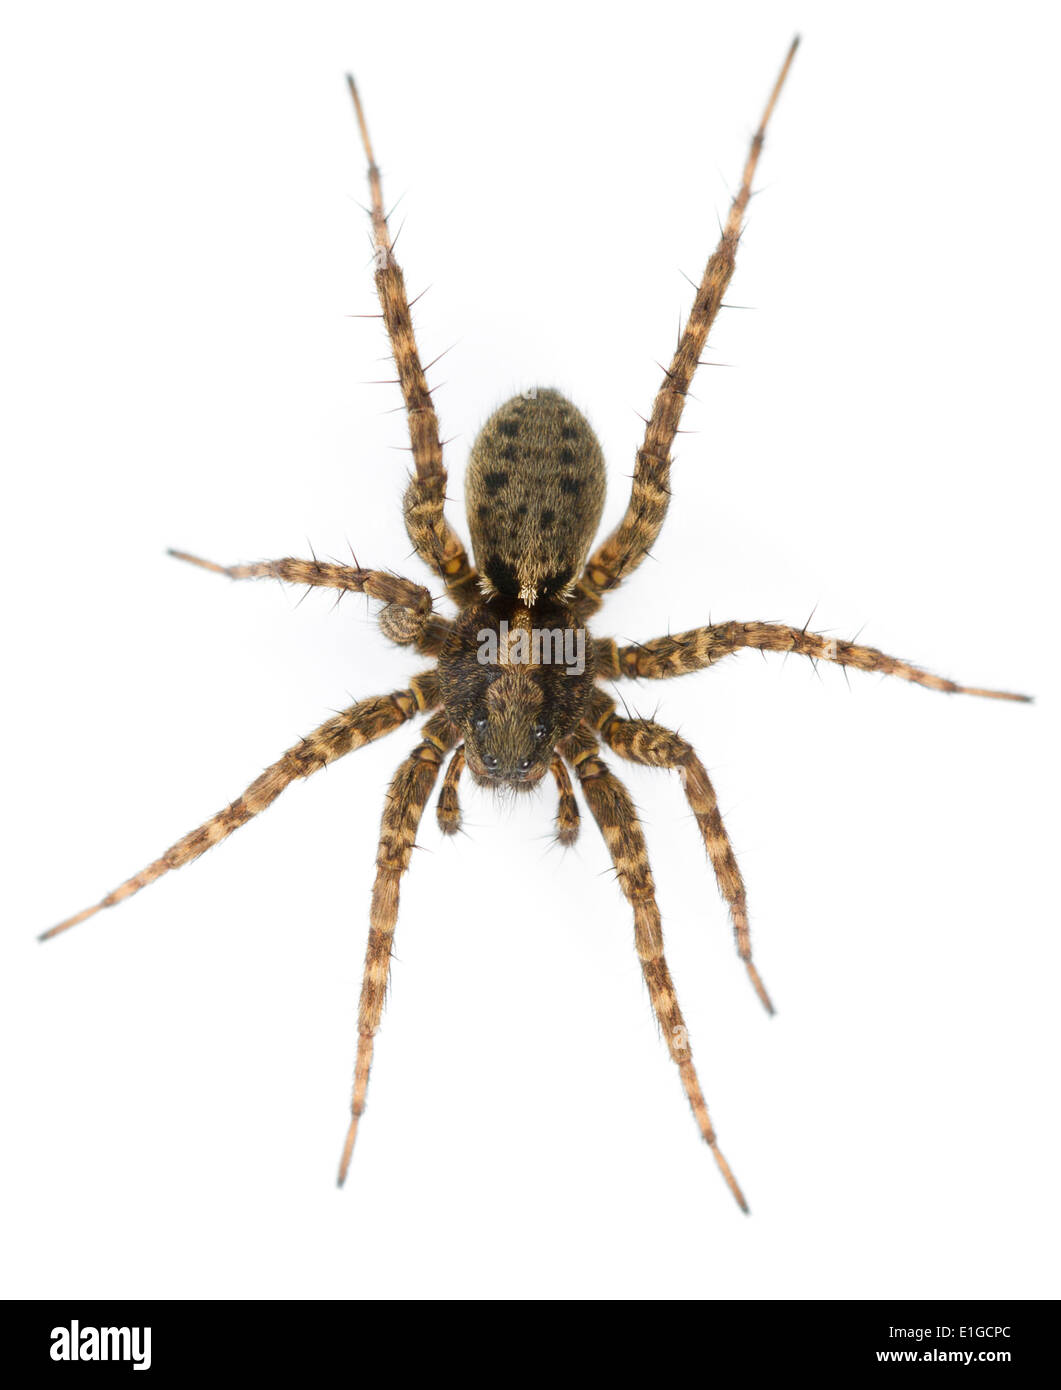 Pardosa amentata - Female - Stock Image